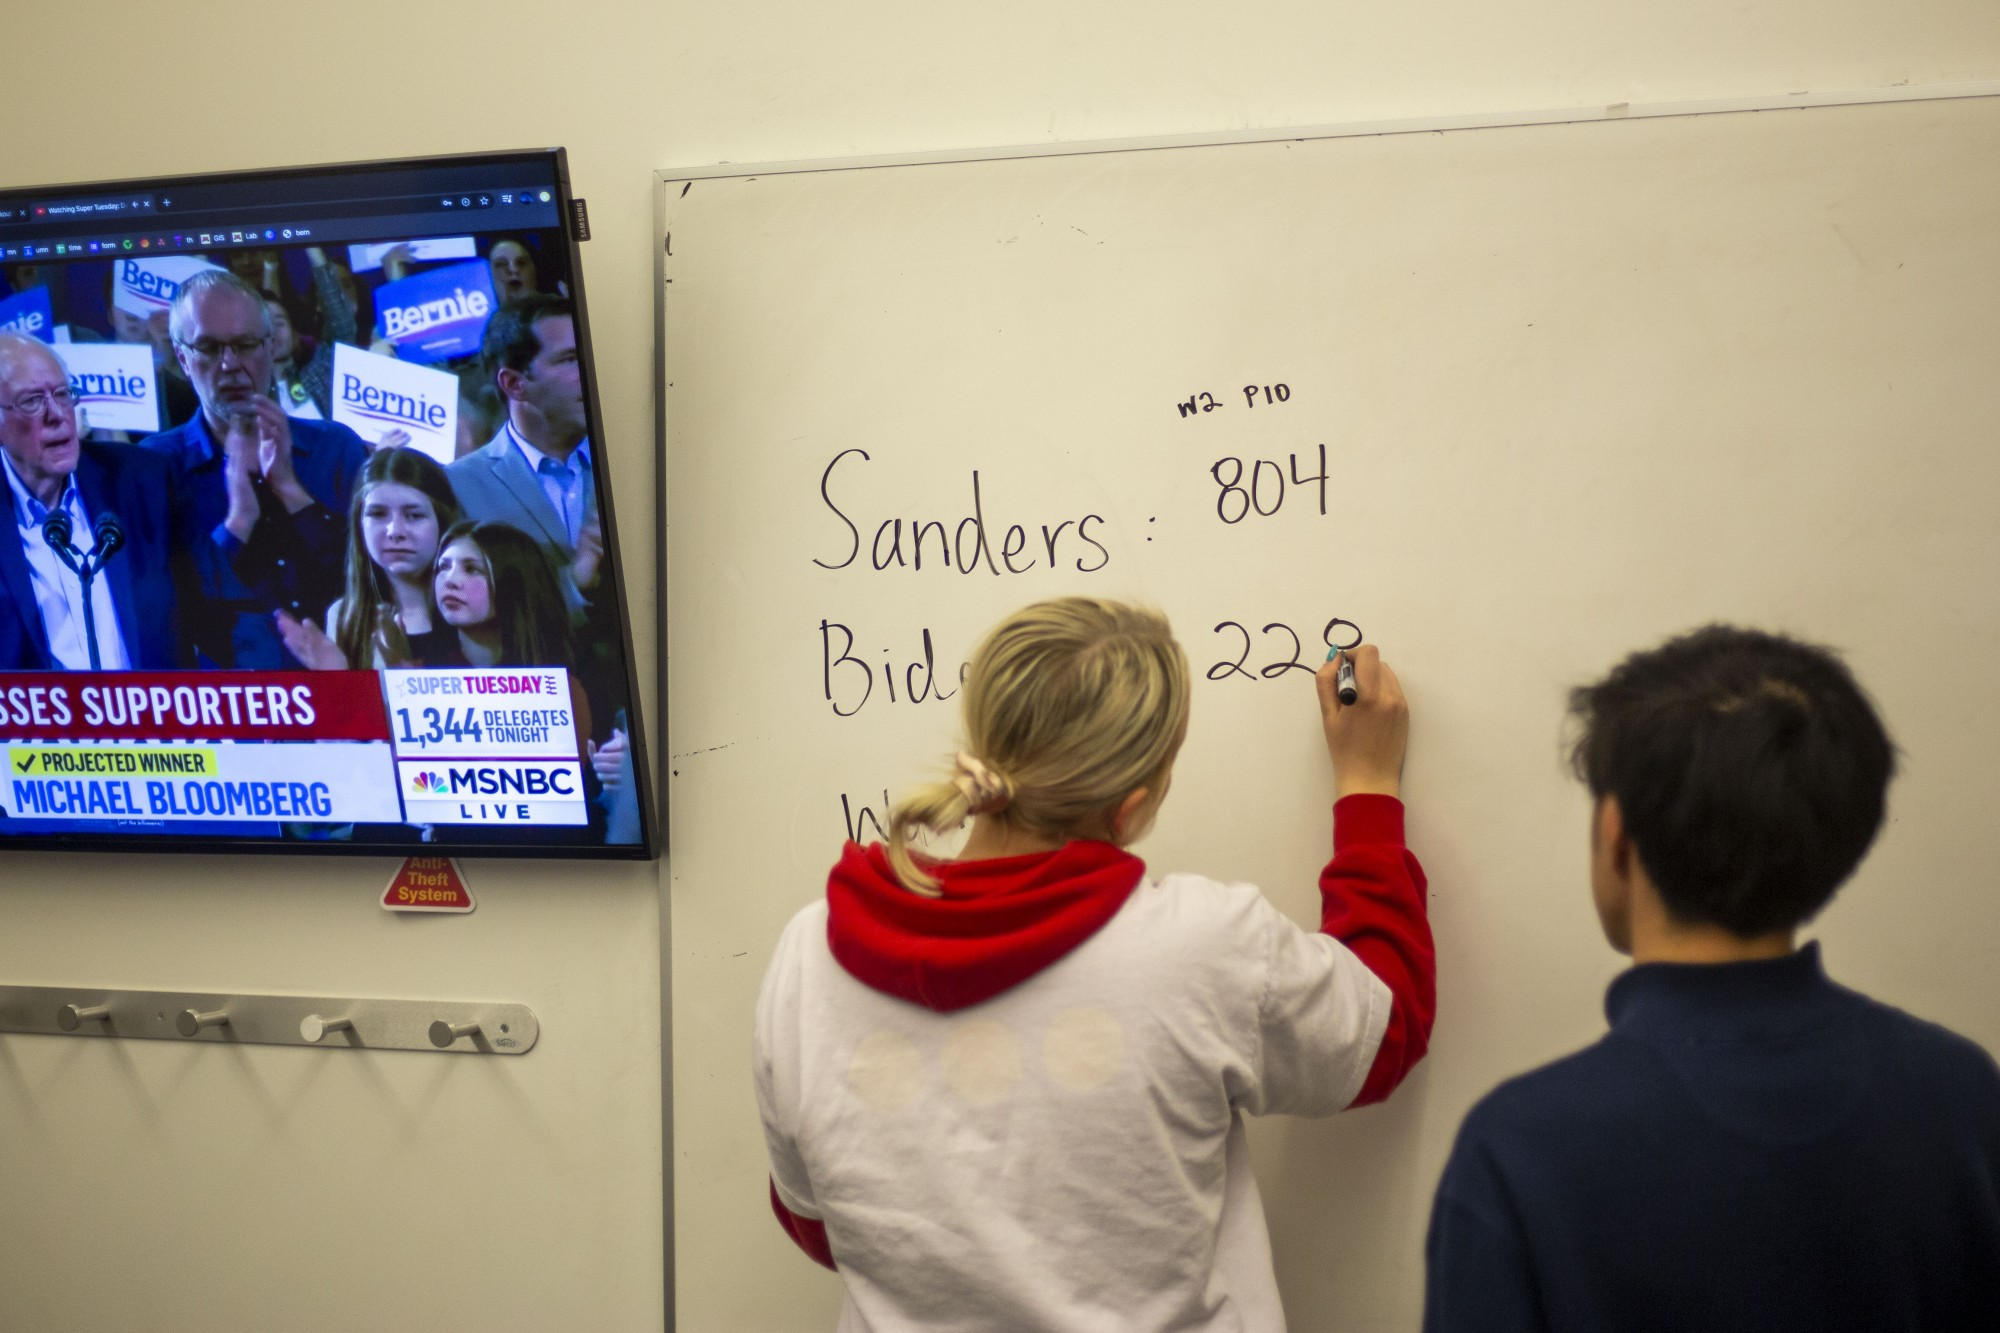 Student supporters of Bernie Sanders gather to watch the Super Tuesday primary results in Bruininks Hall on Tuesday, March 3.